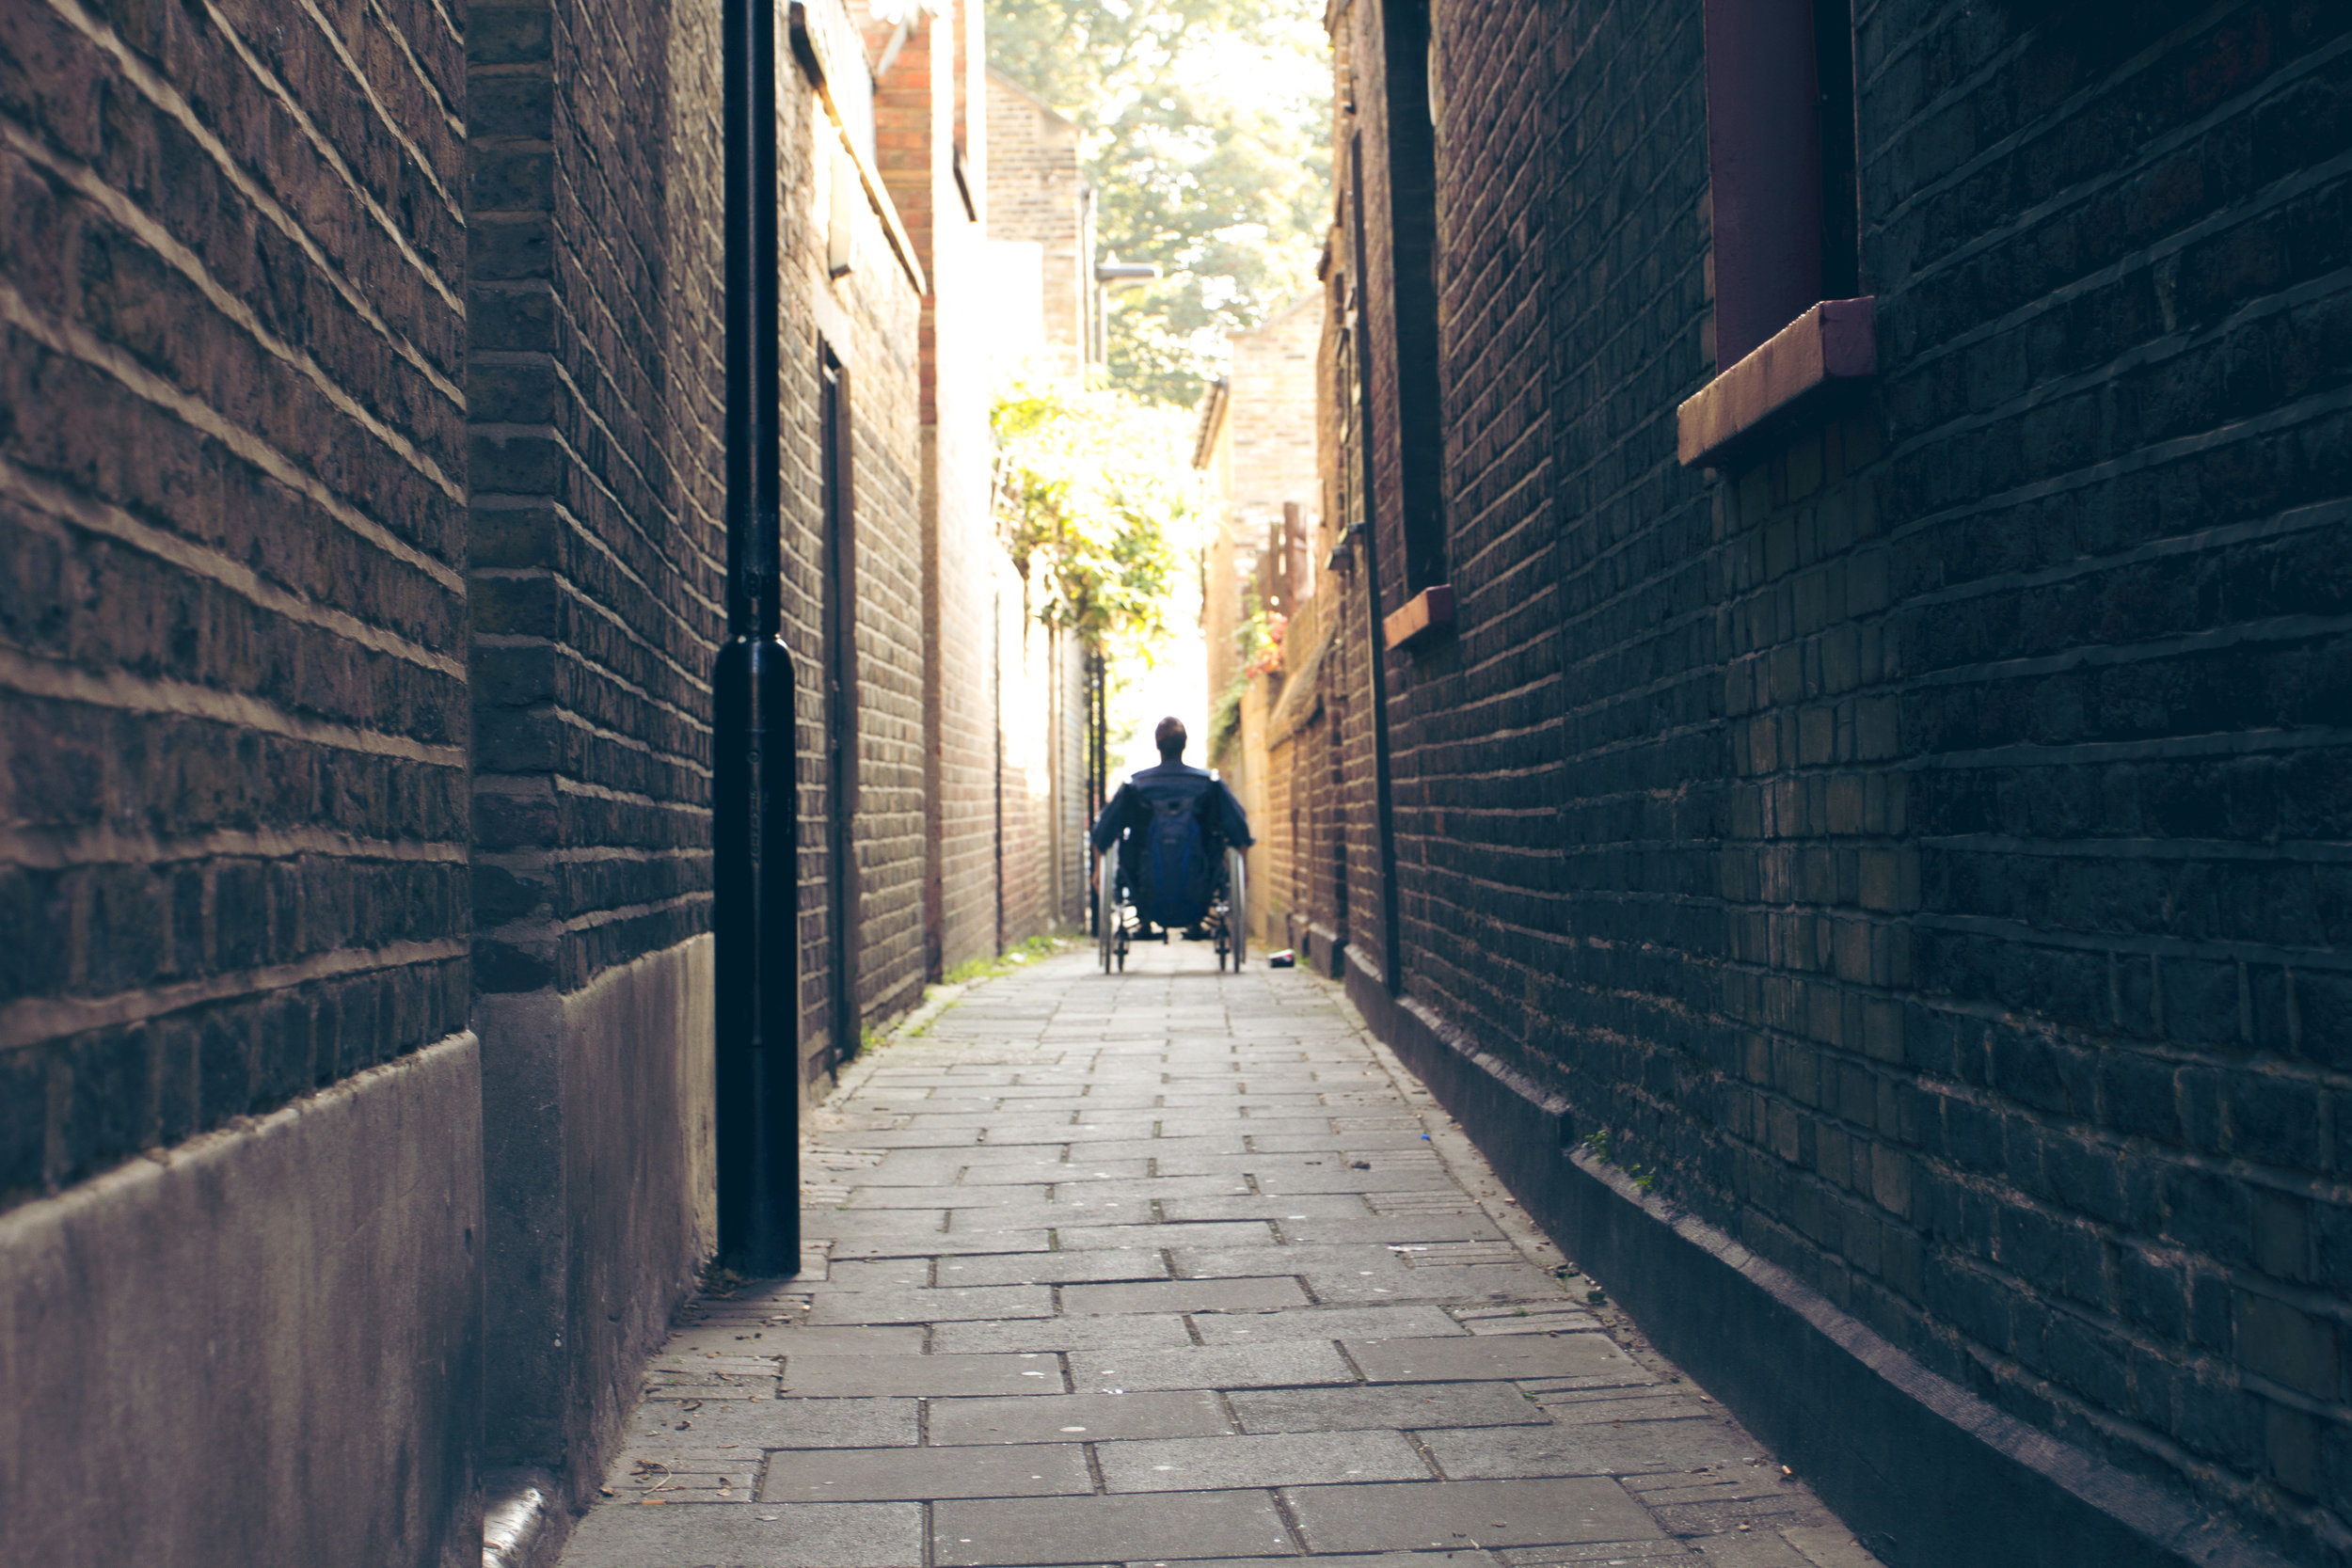 Discover with Flare Access - Over 50% of people surveyed said they would travel more often if they knew it was accessible and hassle free.Don't let the uncertainty of the unknown stop you from exploring or experiencing your next thrilling adventure!